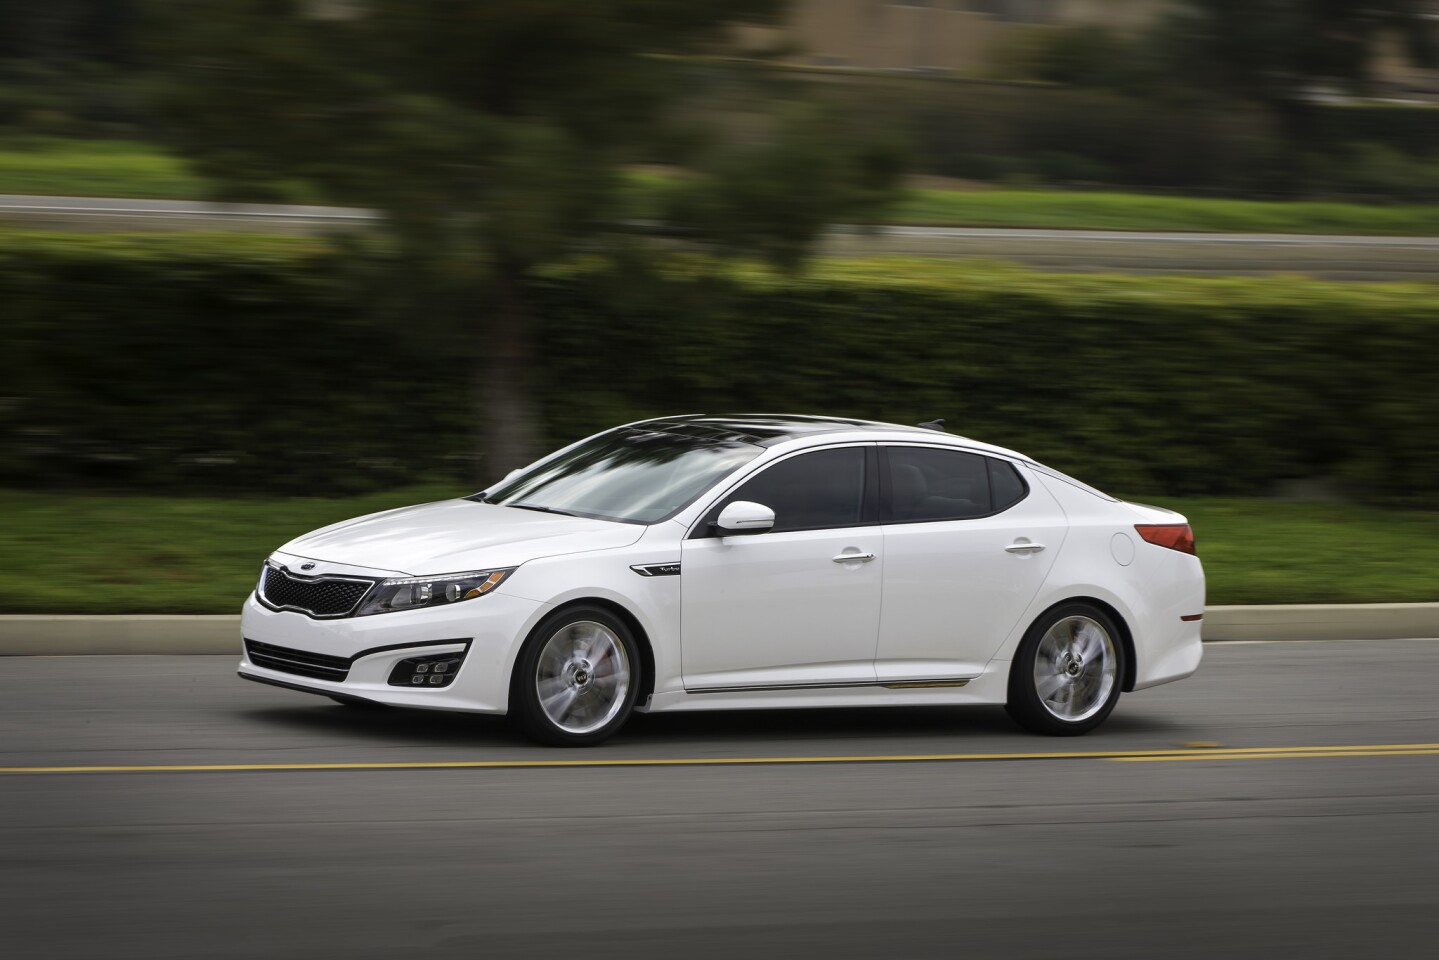 In 10th place we have the Kia Optima SX Turbo. Priced at $27,600, destination charge included, the sedan speeds up from zero to 60 mph in 6.5 seconds -- nothing to sneeze at.